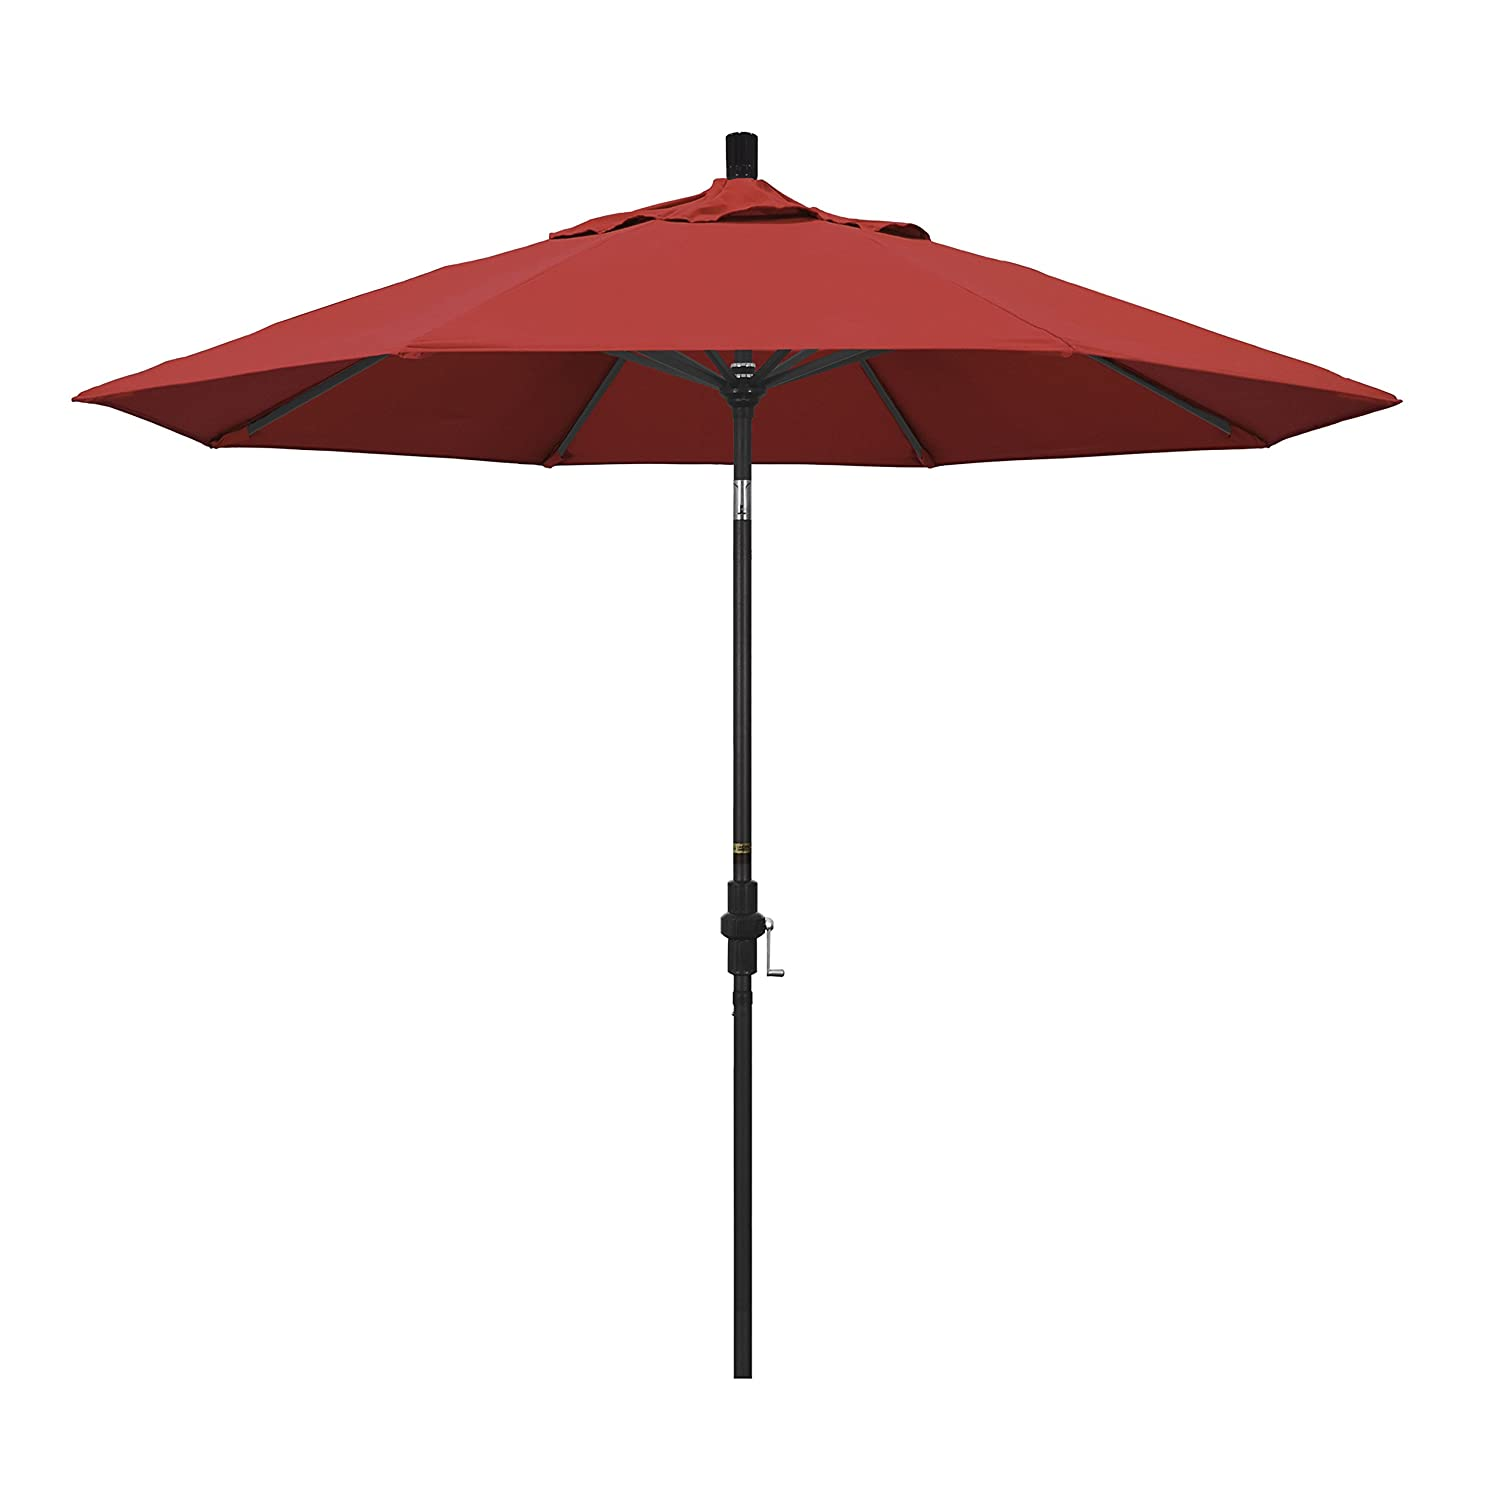 umbrella cantilever umbrellas garden base patio have treasure a world market treasures striped offset lowes design idea for gorgeous decor